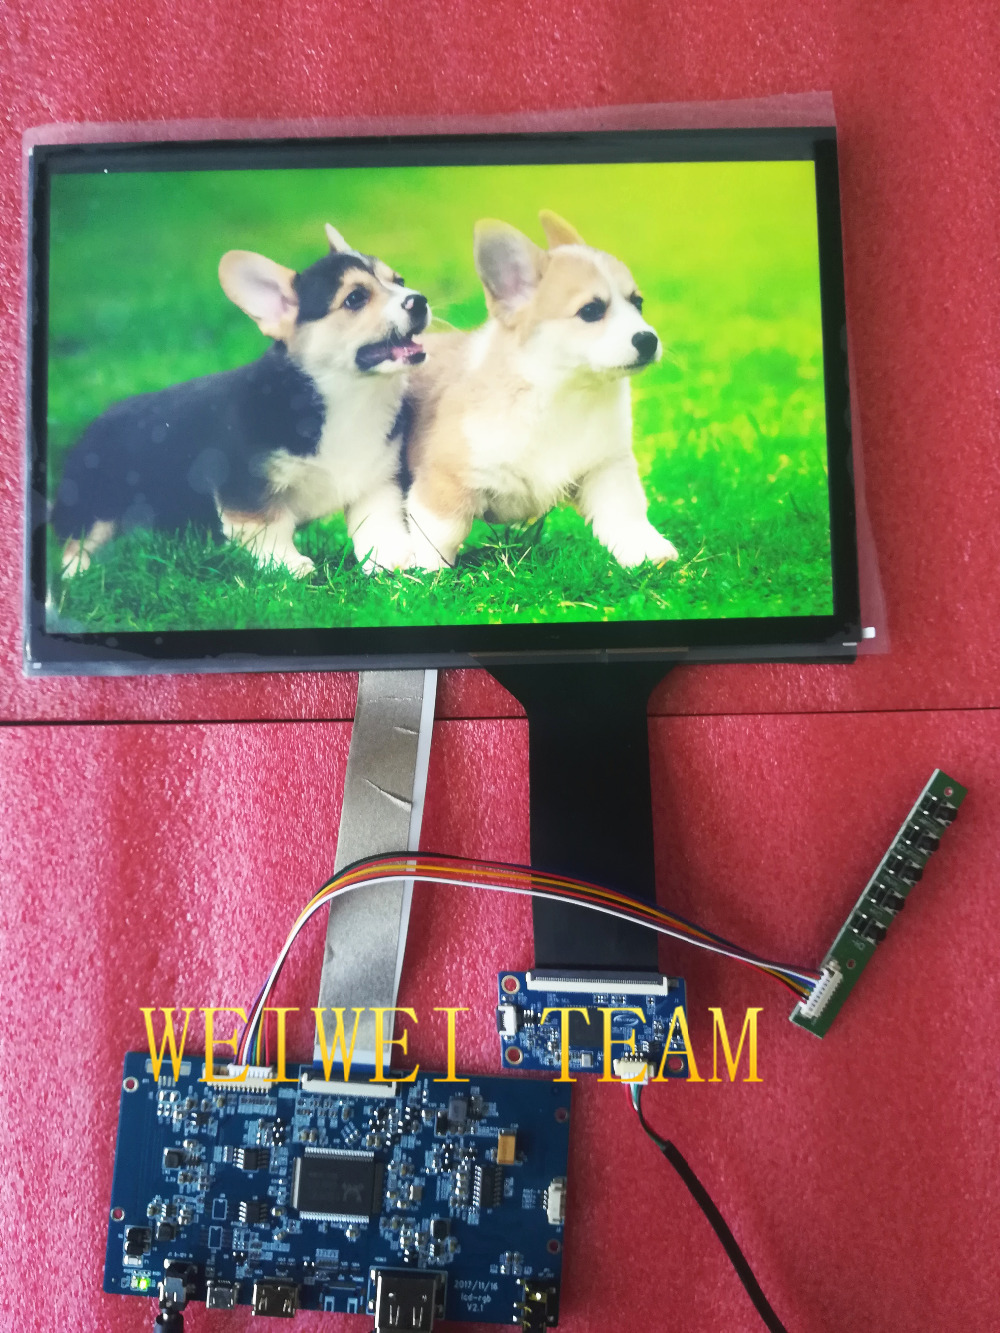 VVX10T025J00 10.1 inch 2k 1440p 2560*1600 TFT Ips Panel Lcd Display capactive touch panel Hdmi to mipi board diy projector kitVVX10T025J00 10.1 inch 2k 1440p 2560*1600 TFT Ips Panel Lcd Display capactive touch panel Hdmi to mipi board diy projector kit